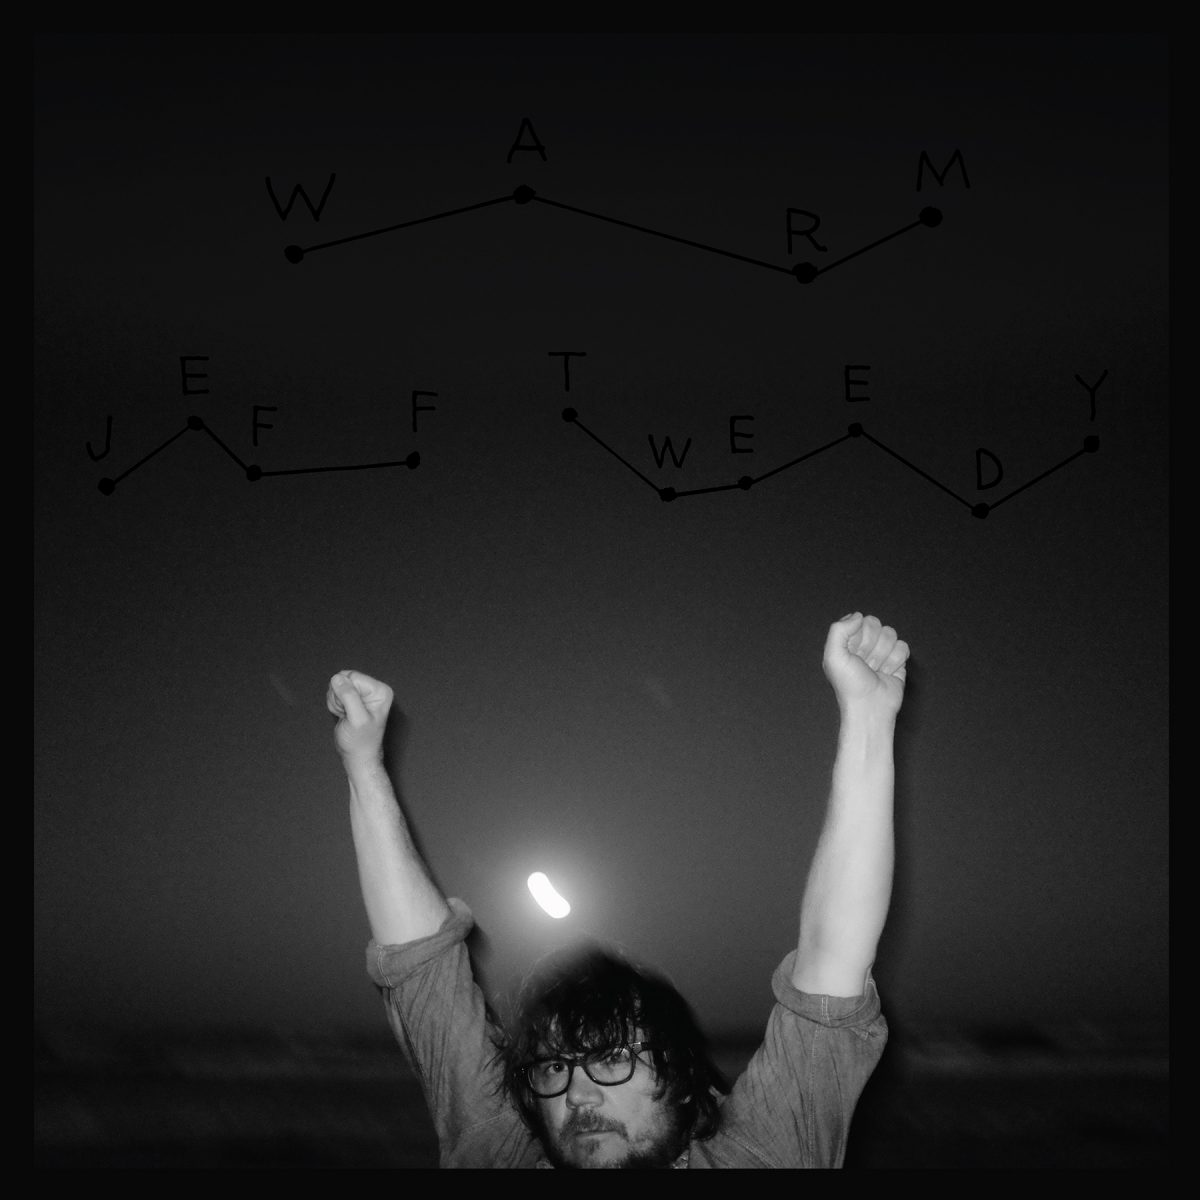 Jeff Tweedy - WARM